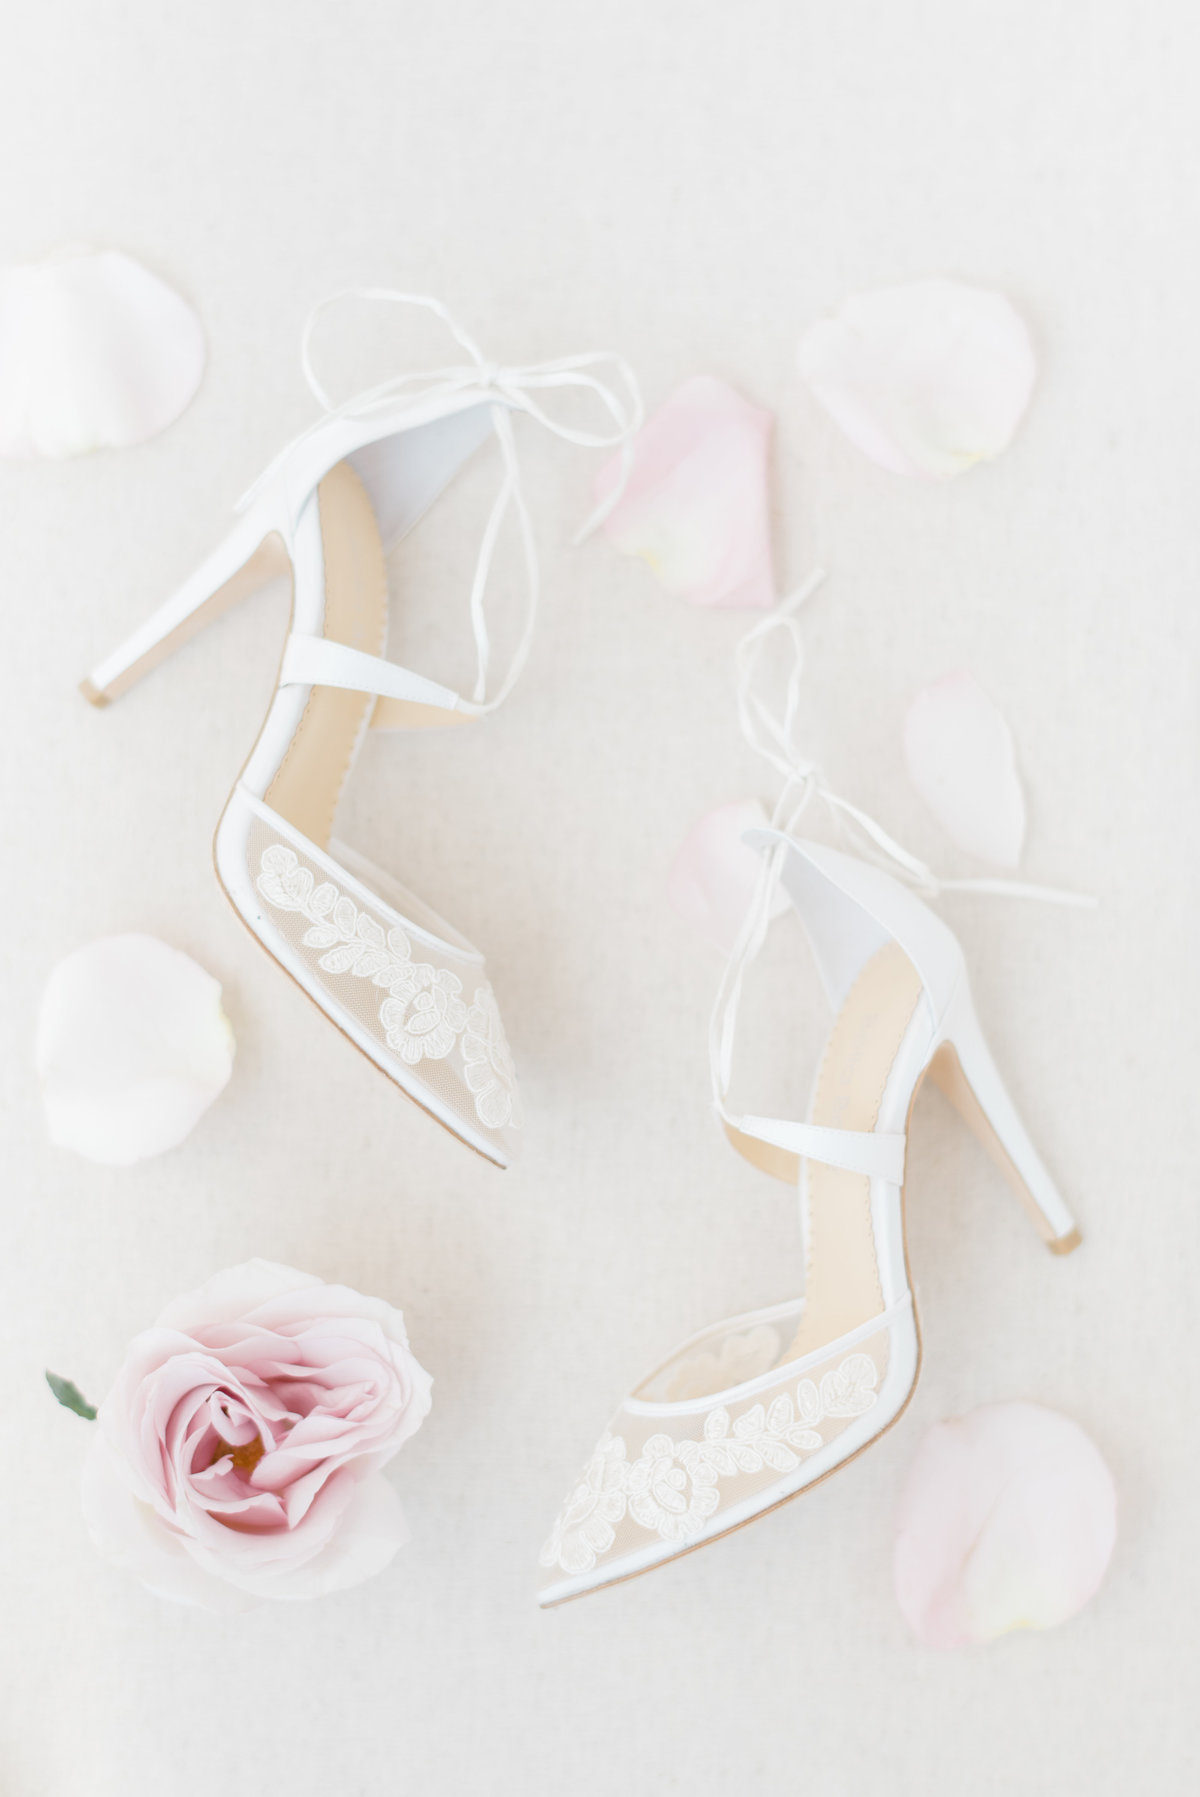 Brides-shoes-with-flowers-photograph